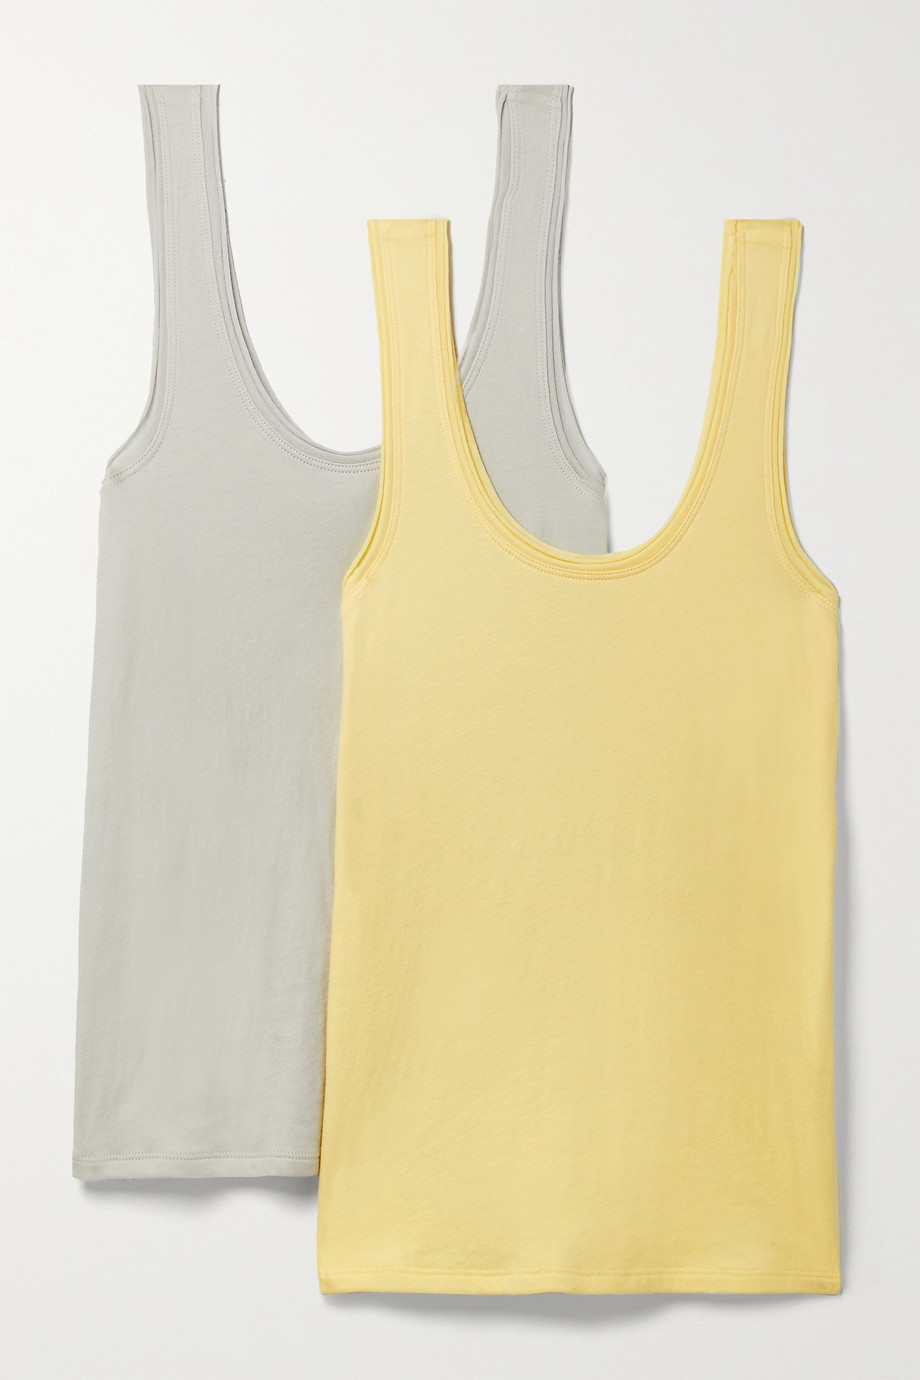 SKIN + NET SUSTAIN Gal set of two organic Pima cotton-jersey tanks